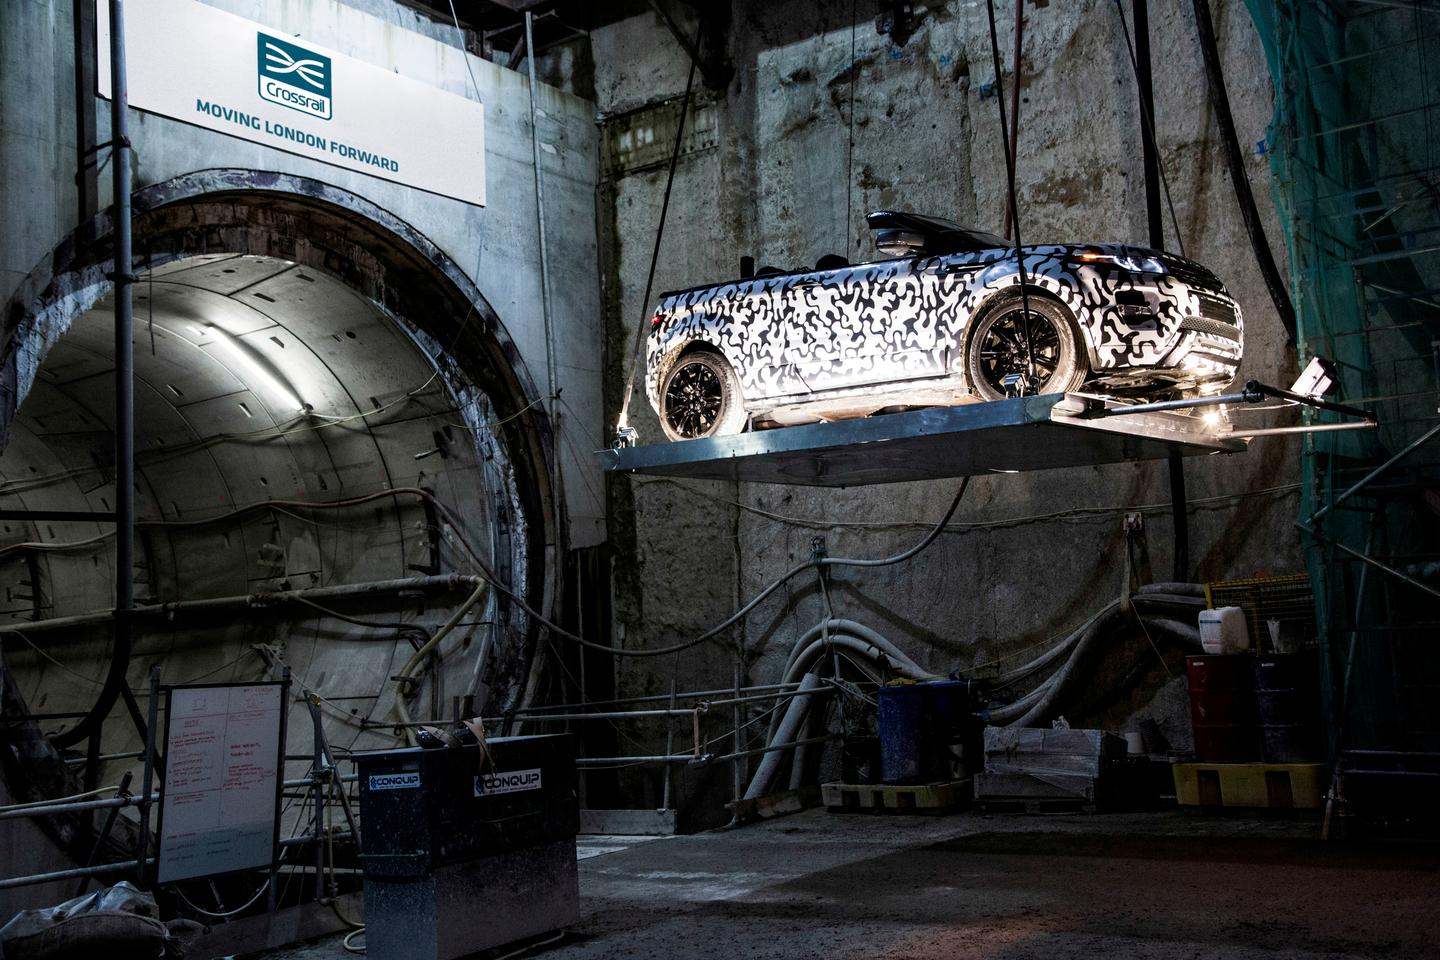 The first Range Rover Evoque Convertible prototype makes its way into the Crossrail tunnels